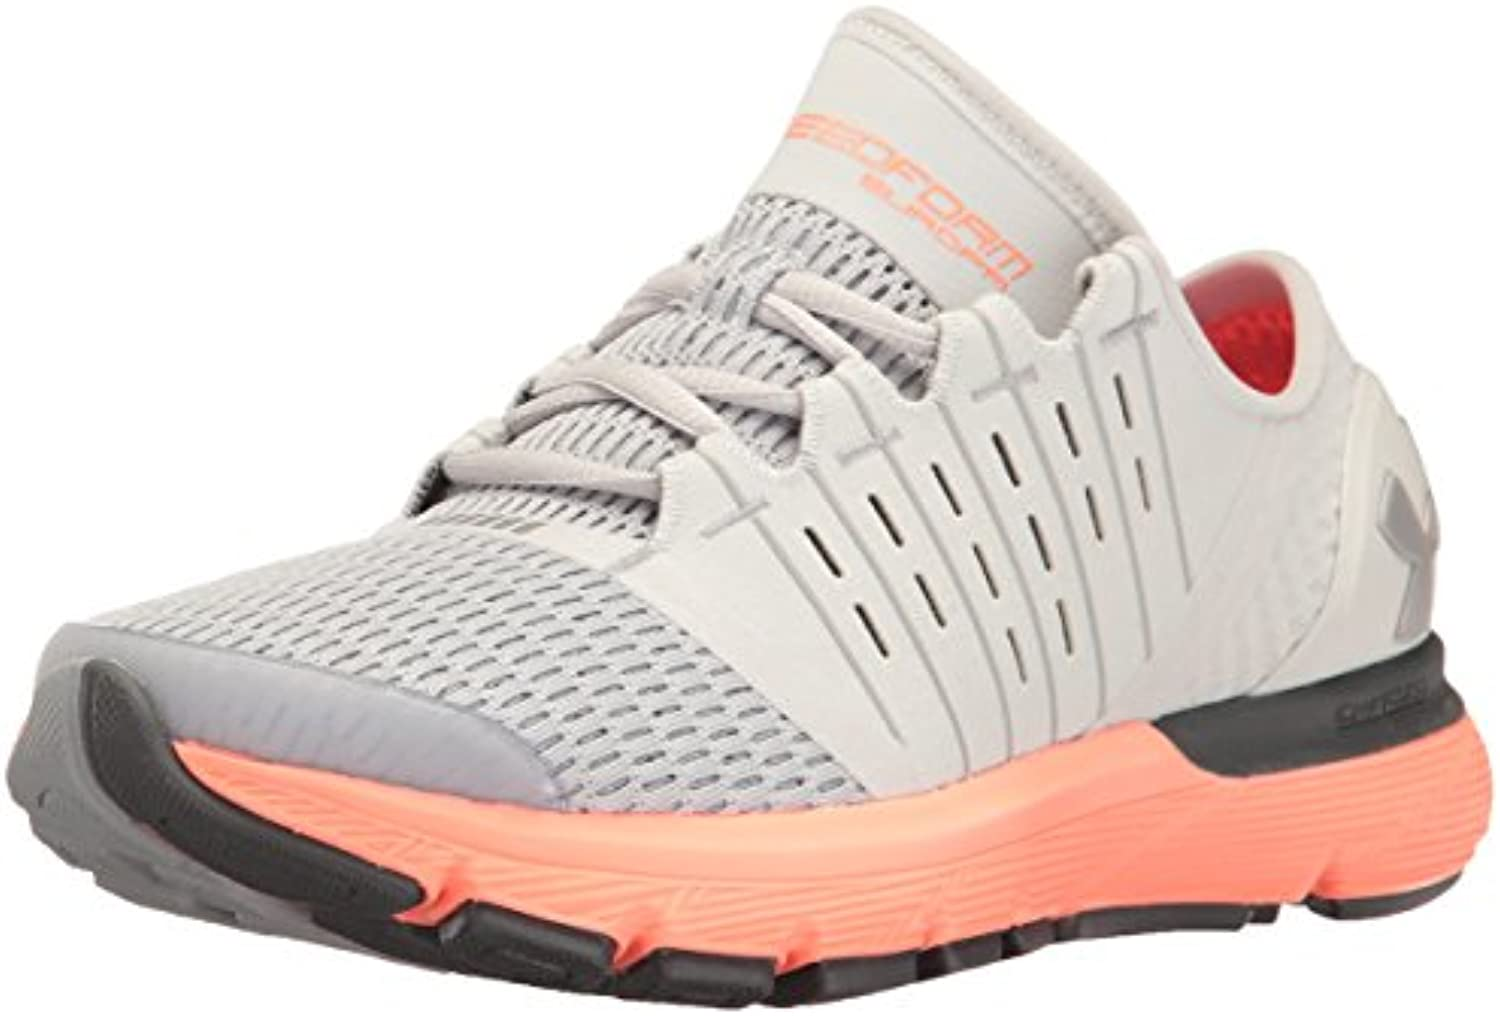 Under Armour Speedform Europa Women's Zapatillas De Entrenamiento - AW17